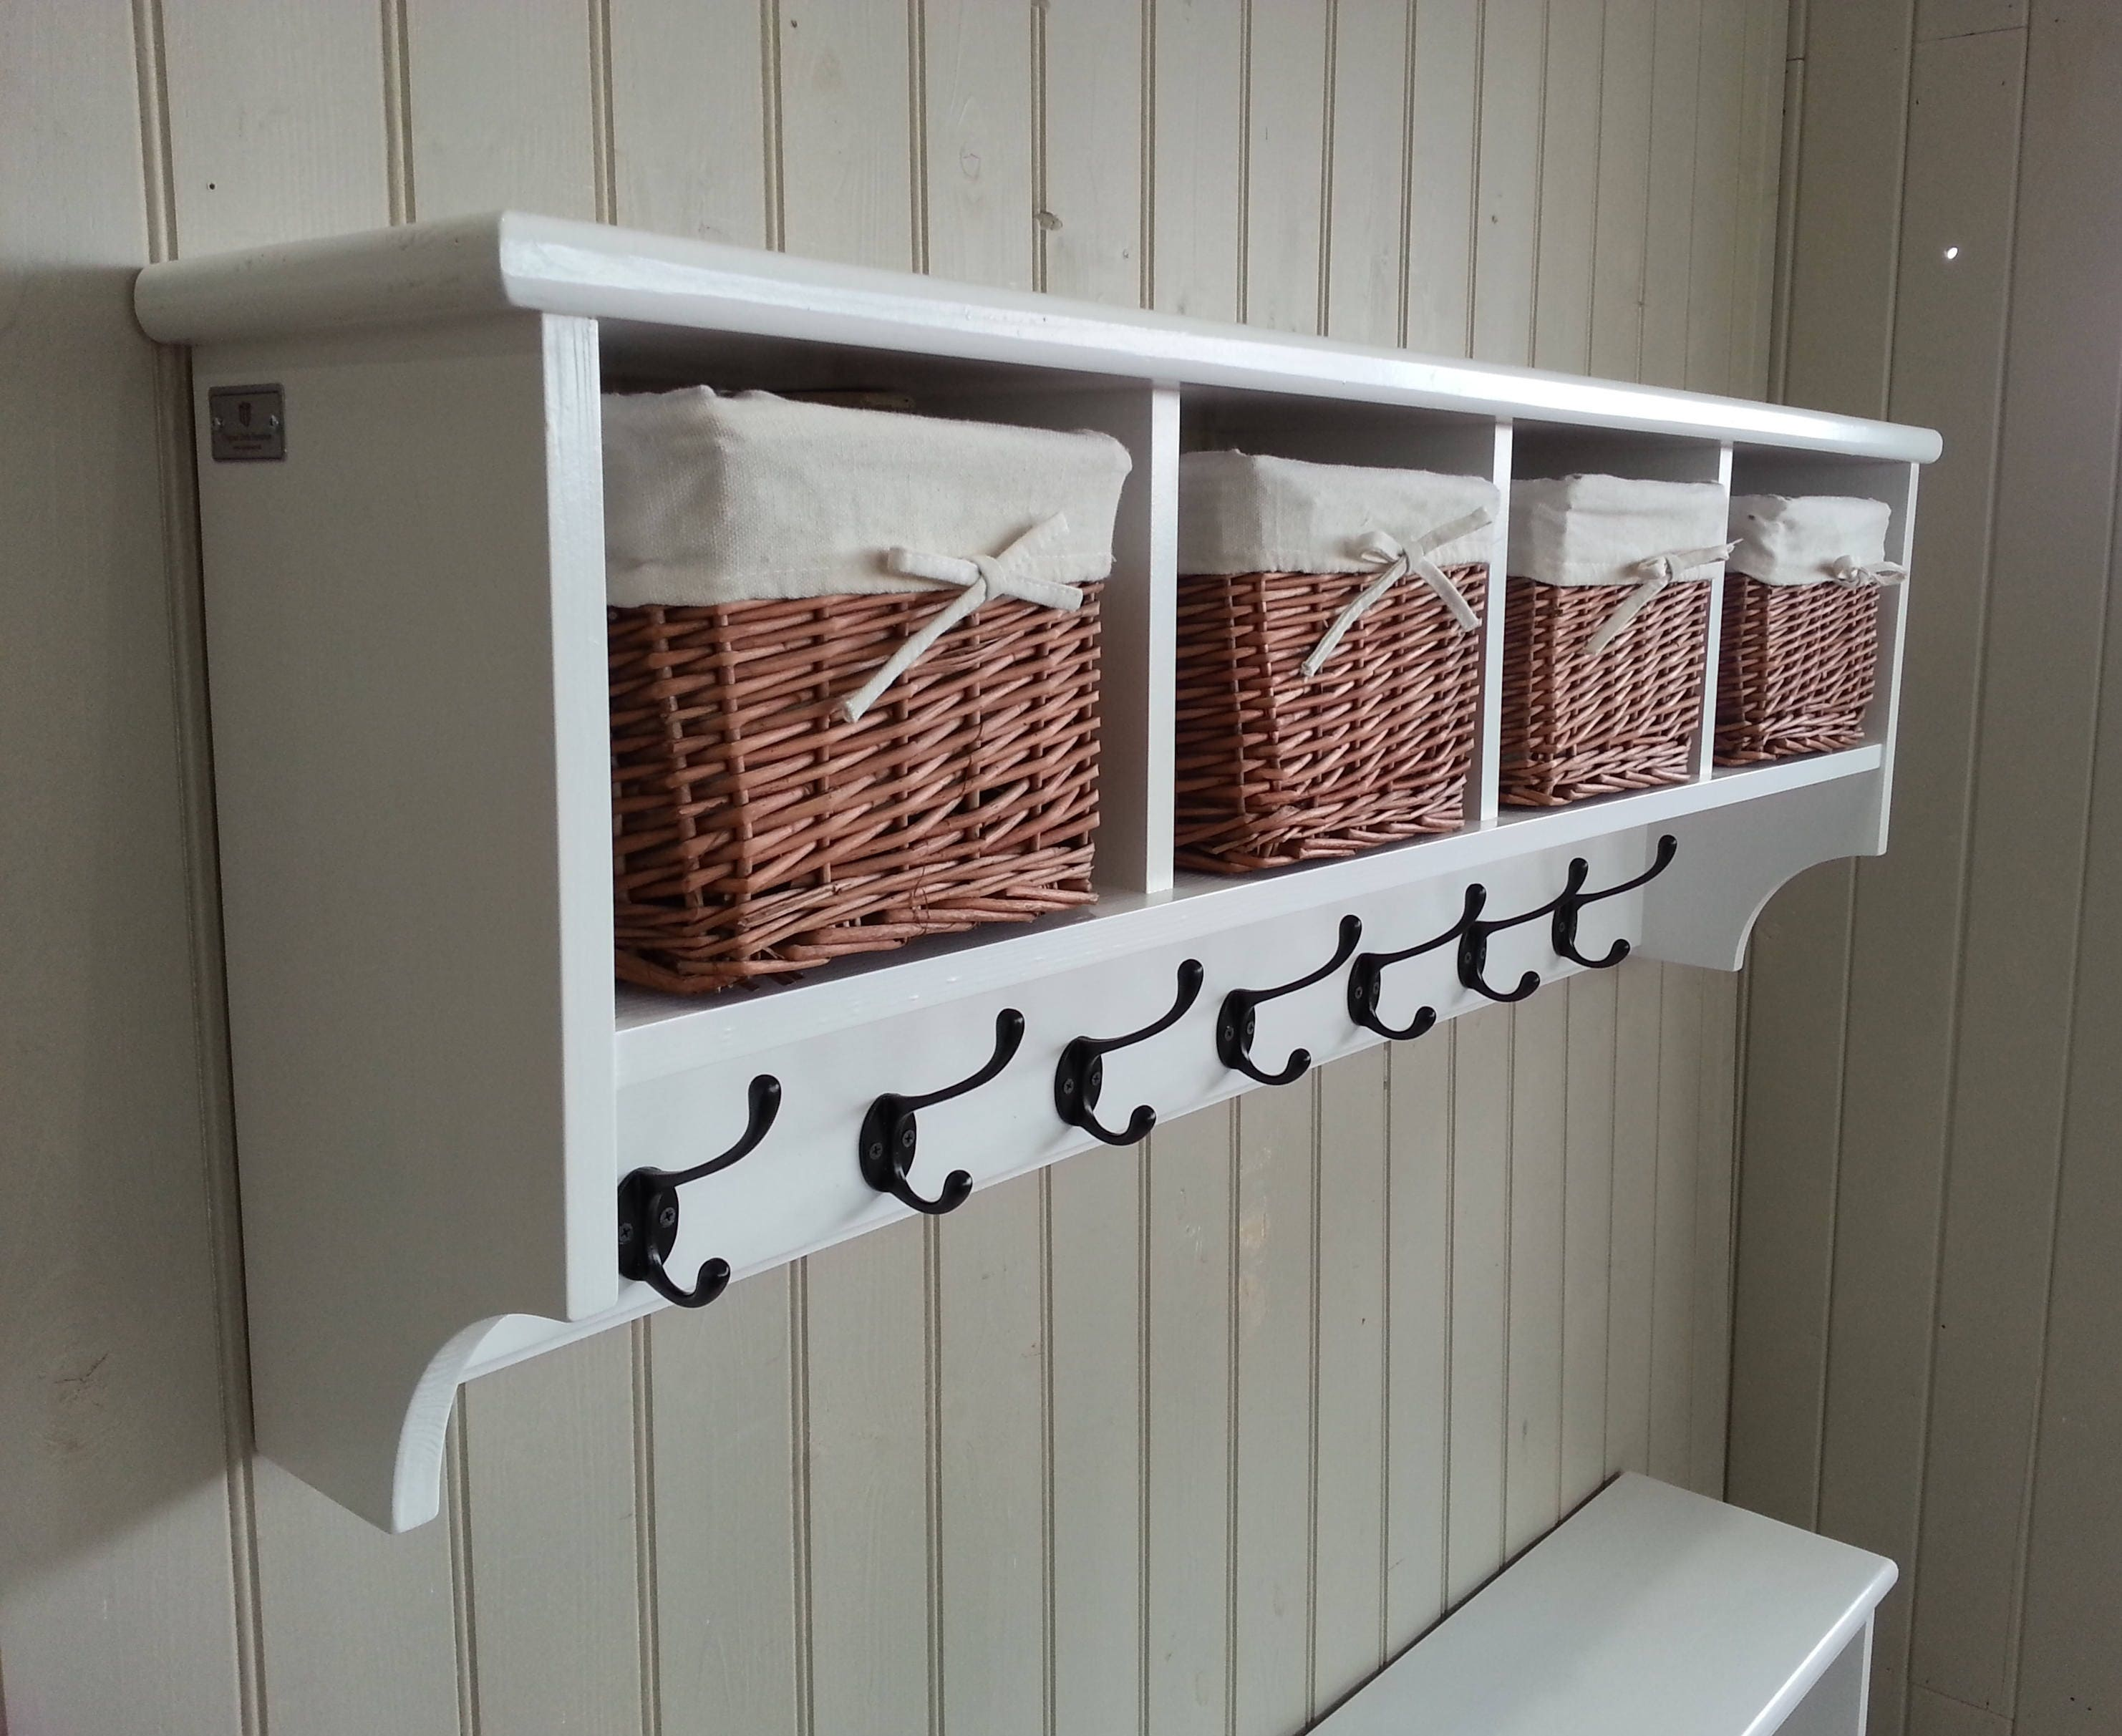 Hat Amp Coat Rack With Shelf Including Storage Baskets